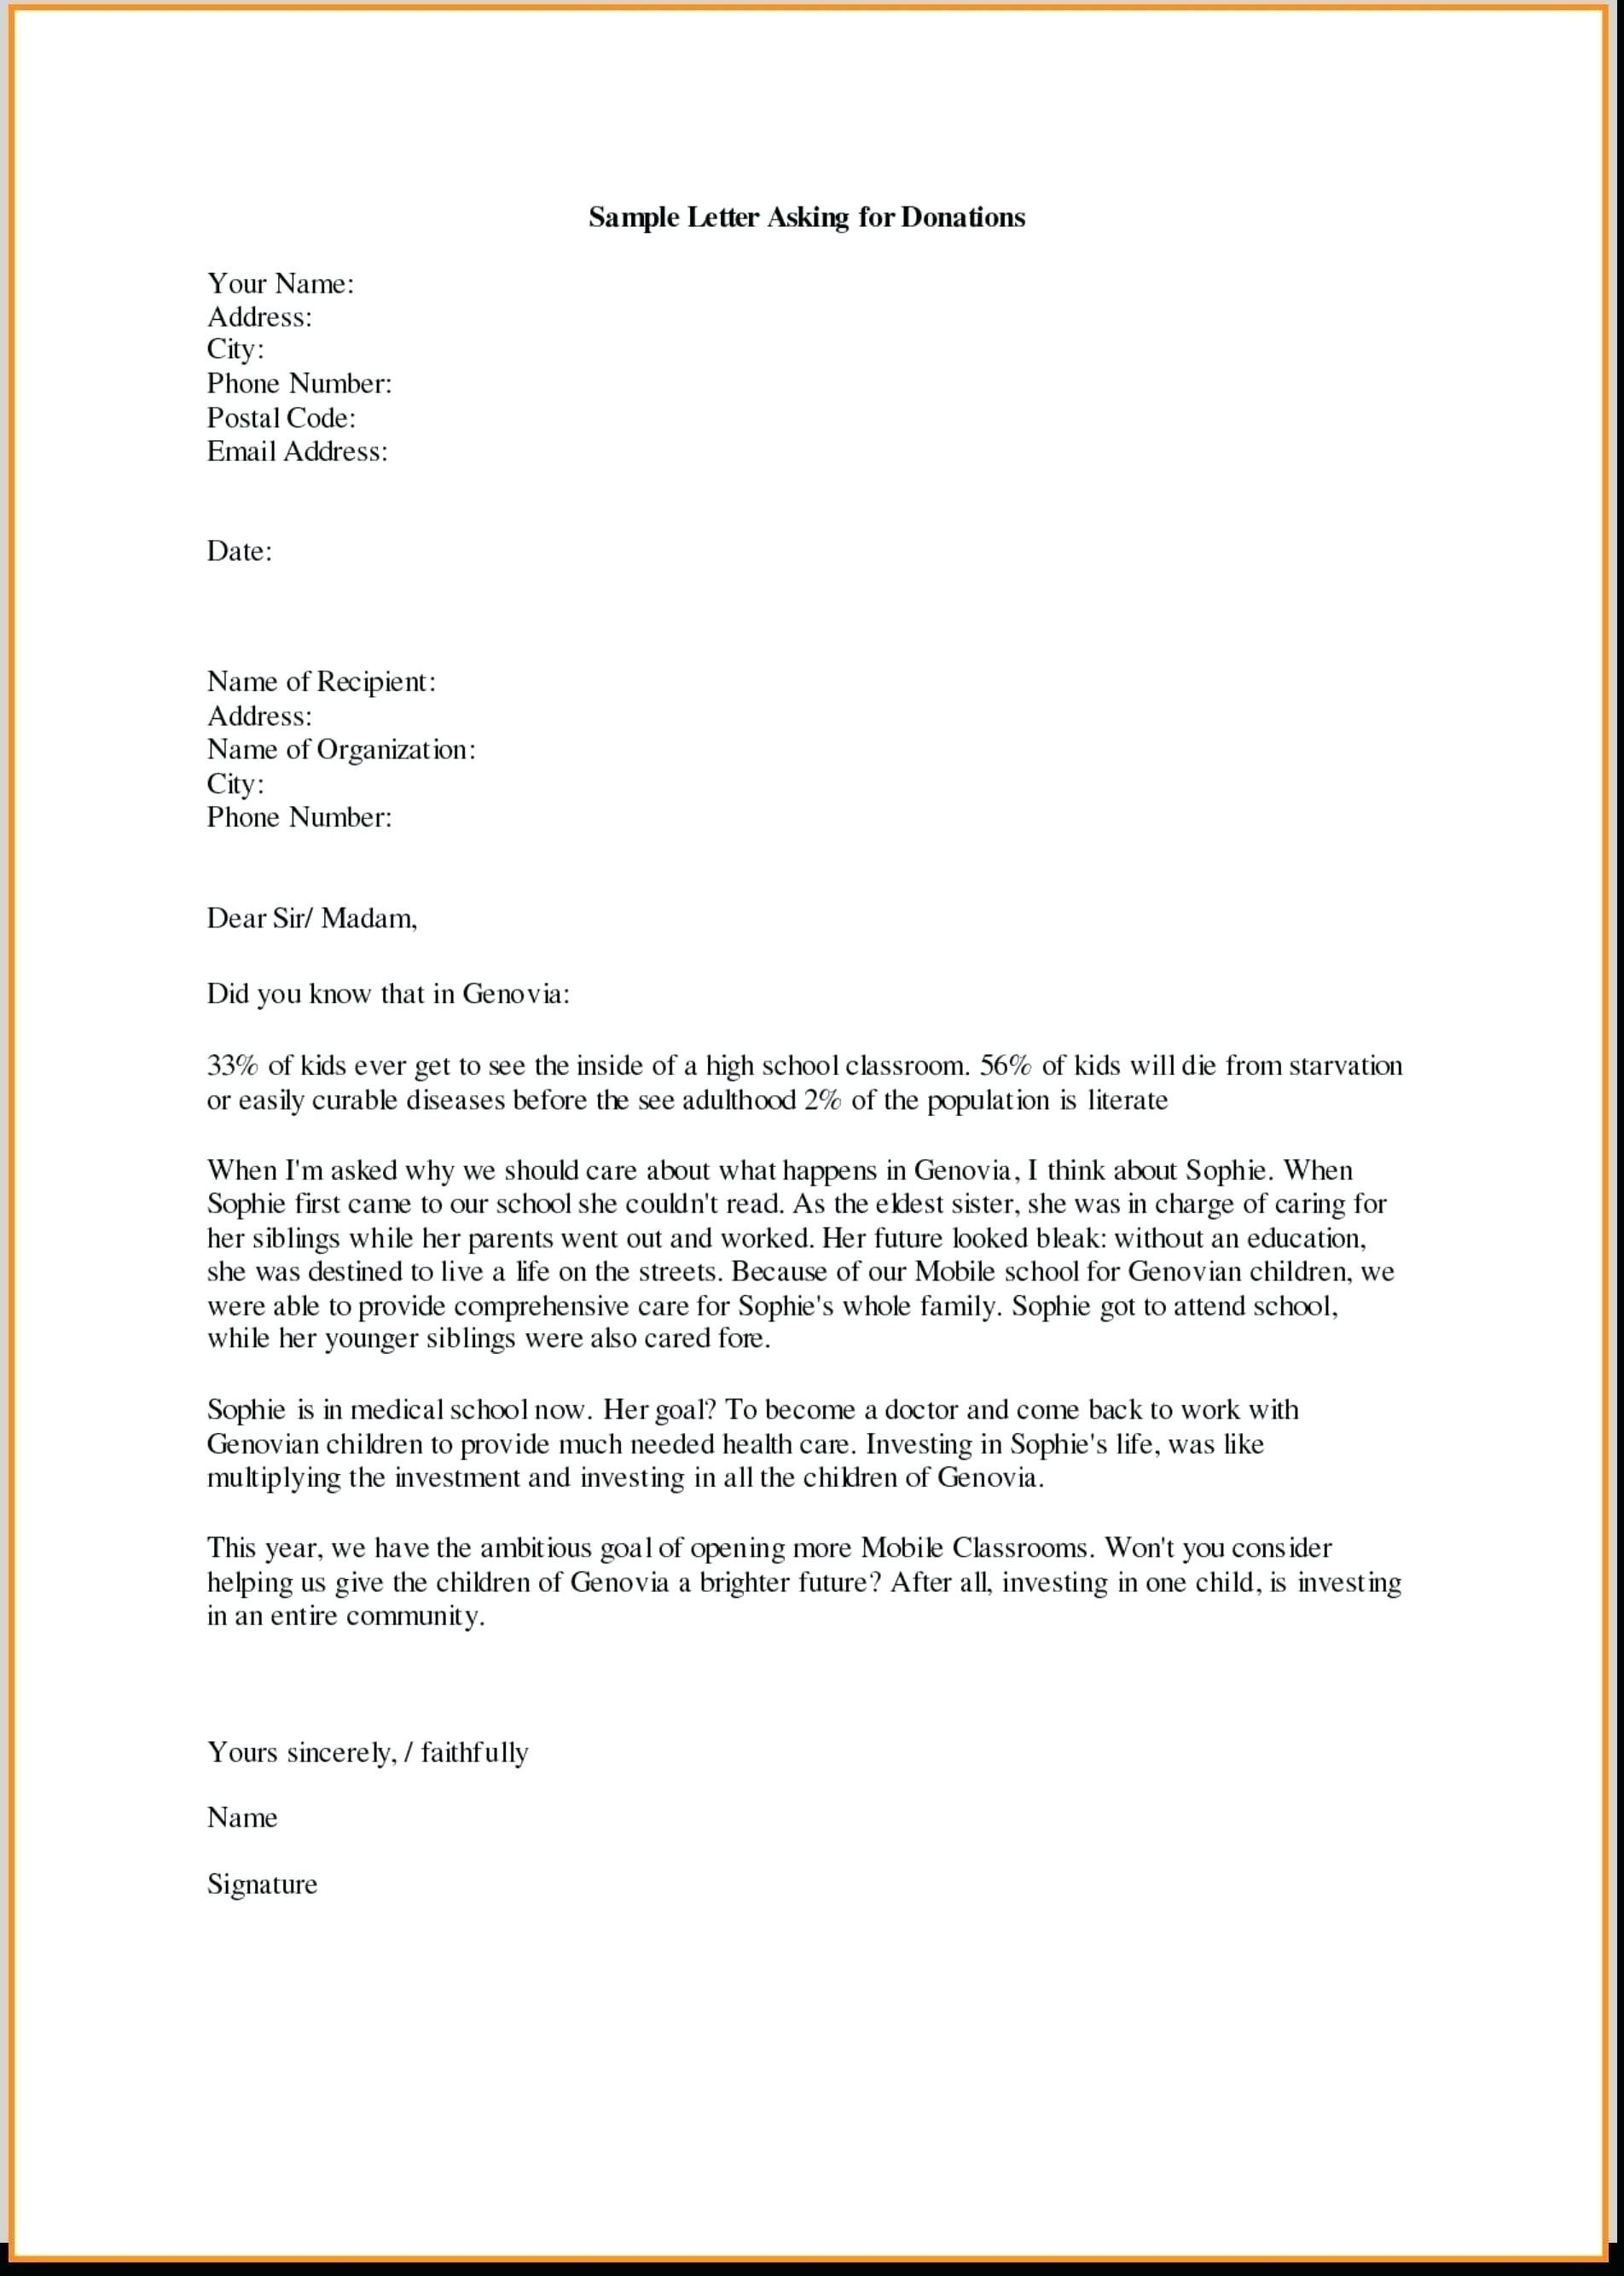 Fundraising Request for Donation Letter Template - Samples Letters Request Donation Best Samples Letters Request